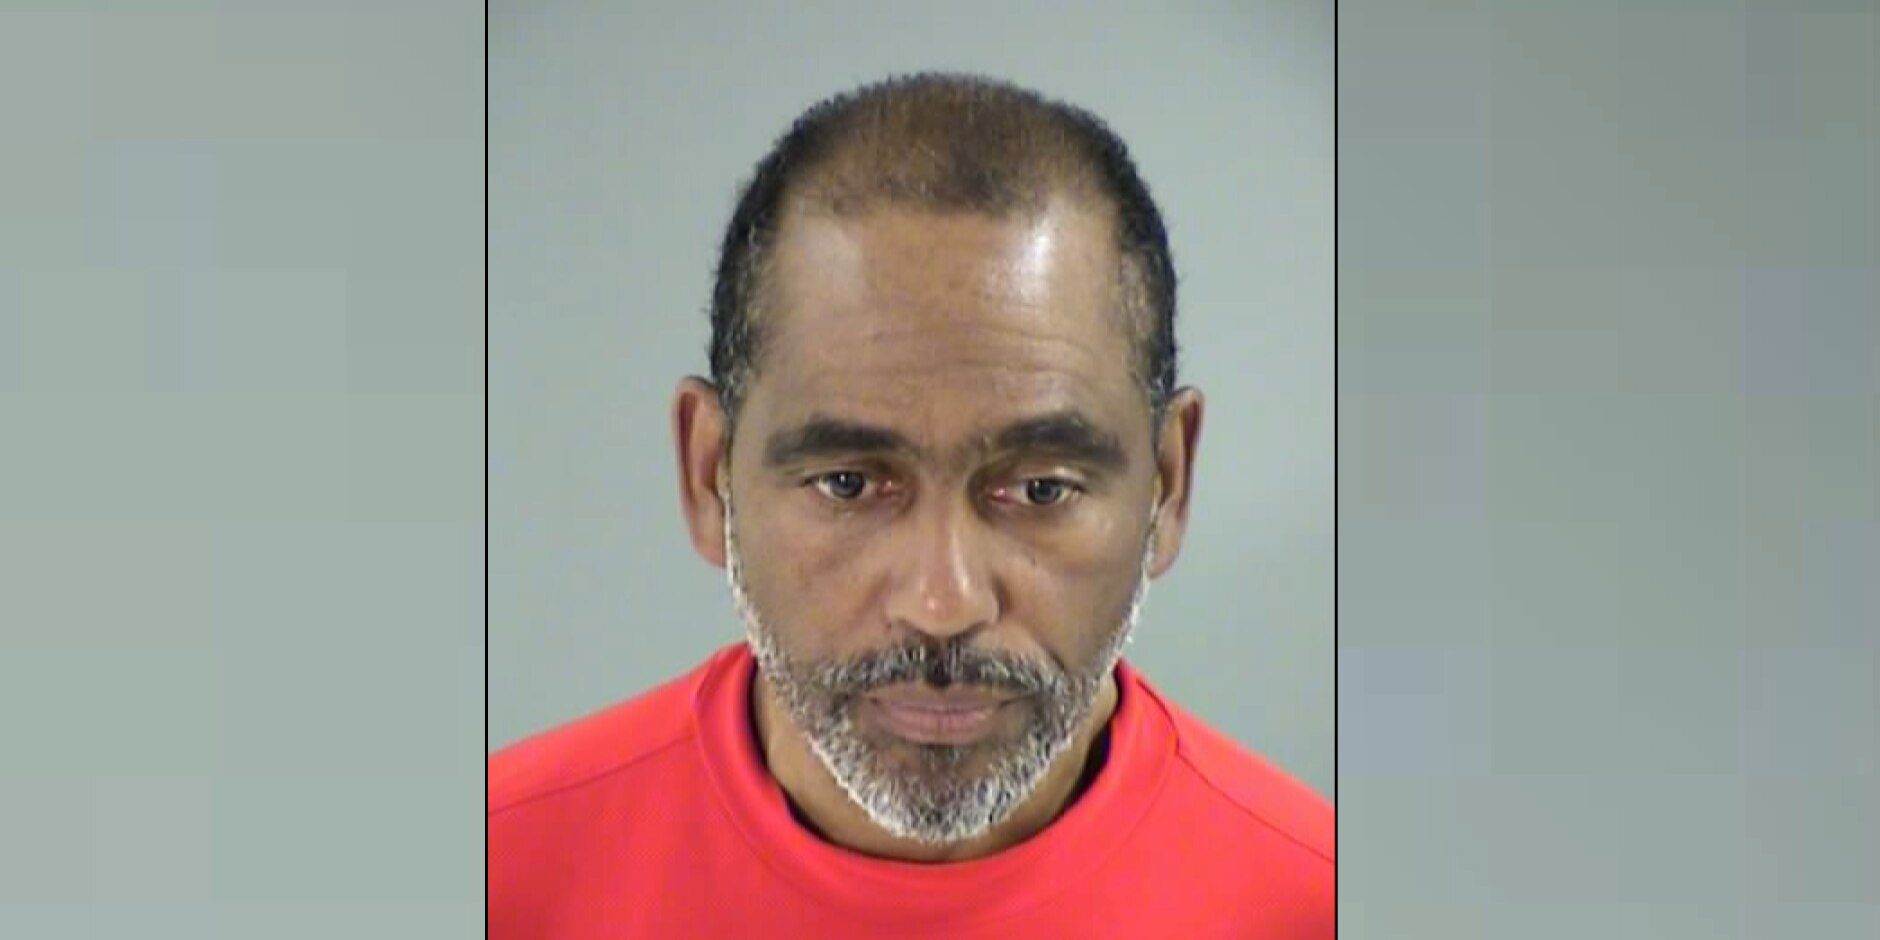 Henrico man charged with animal cruelty involving horses